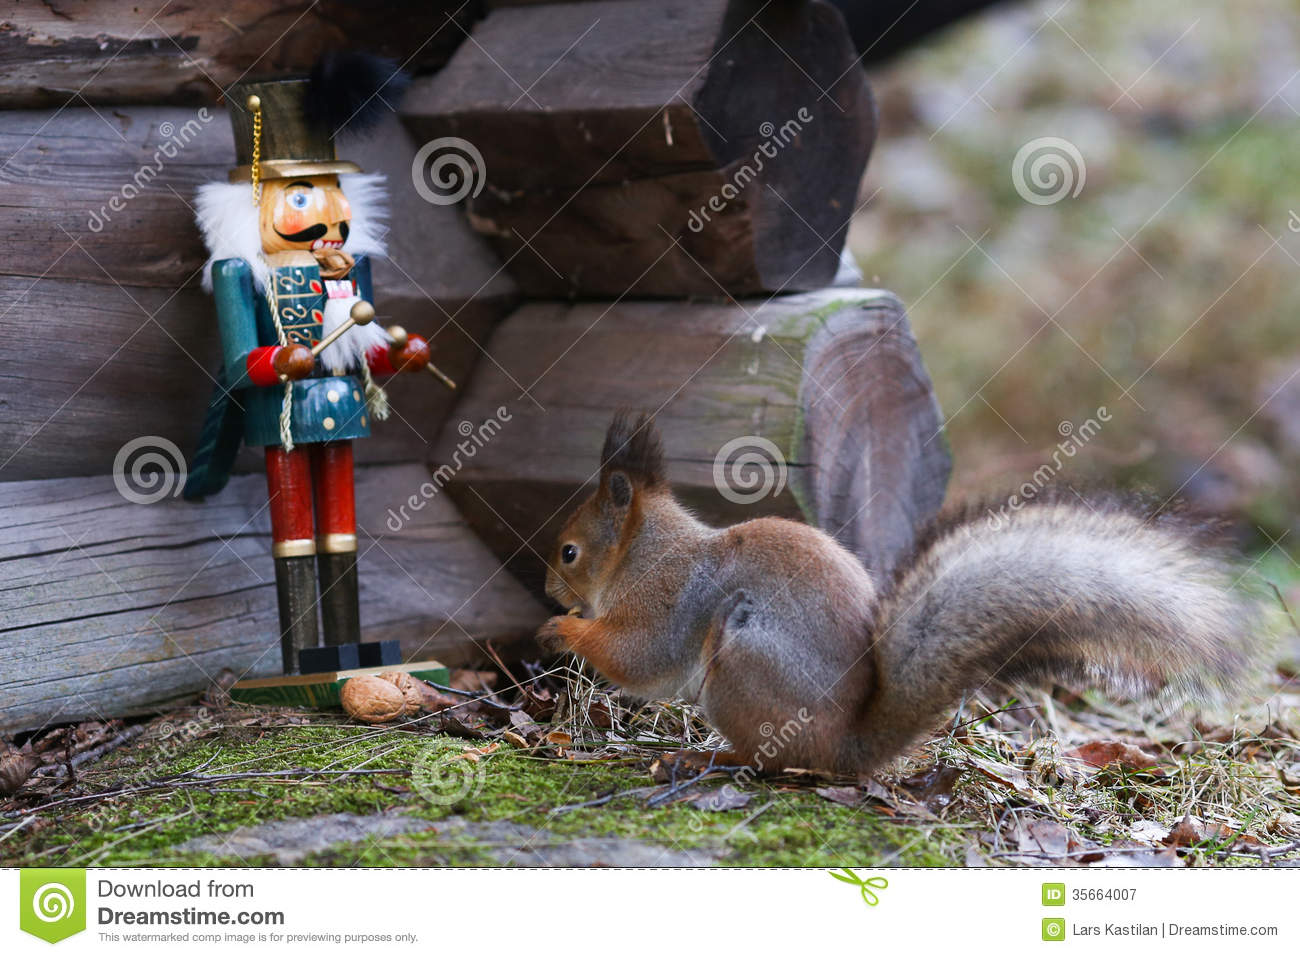 Nutcracker and squirrel royalty free stock photography image 35664007 Nutcracker squirrel